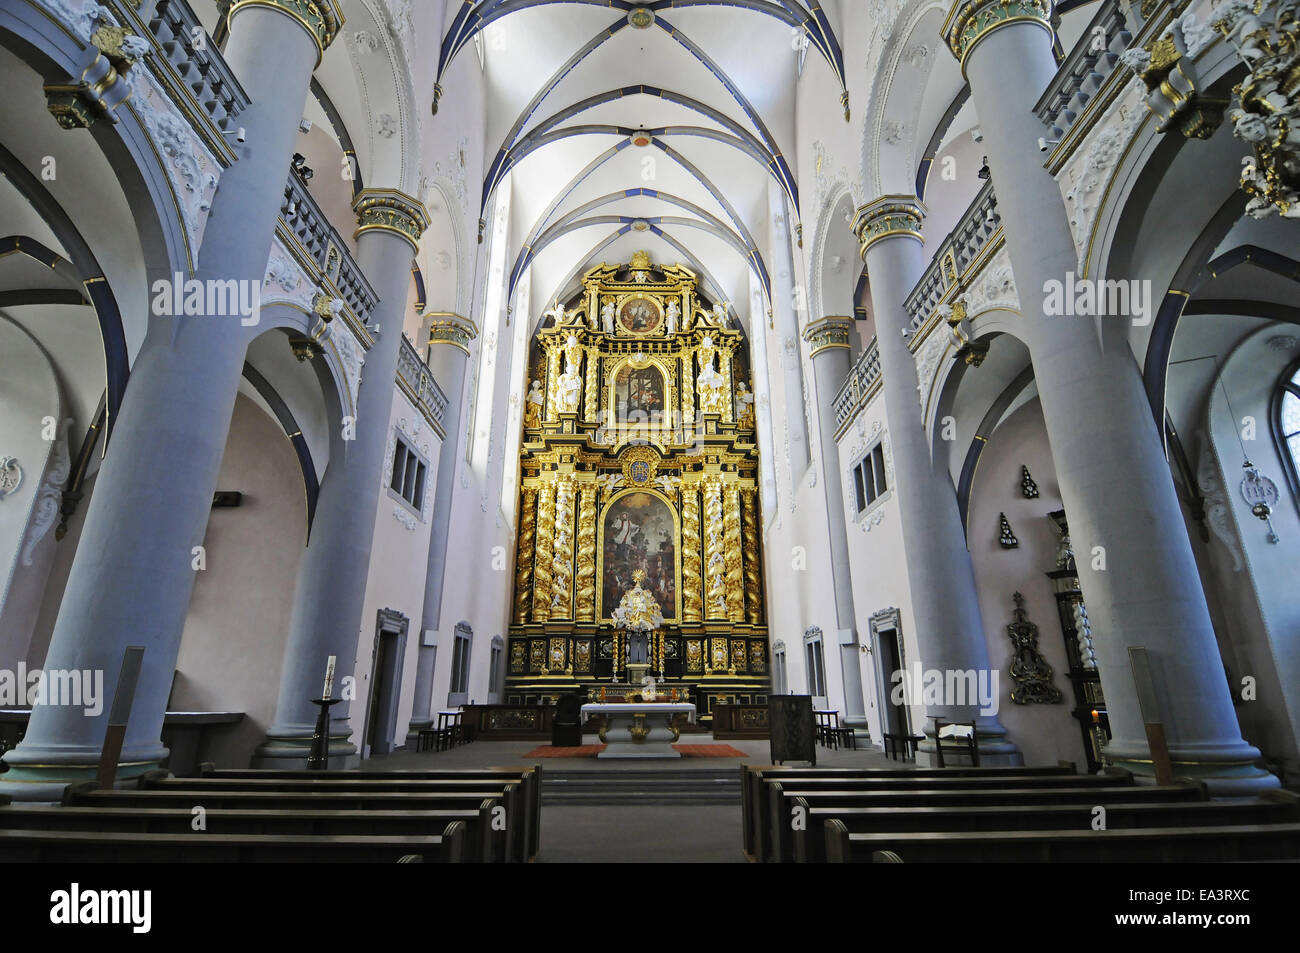 marktkirche church paderborn germany stockfotos. Black Bedroom Furniture Sets. Home Design Ideas